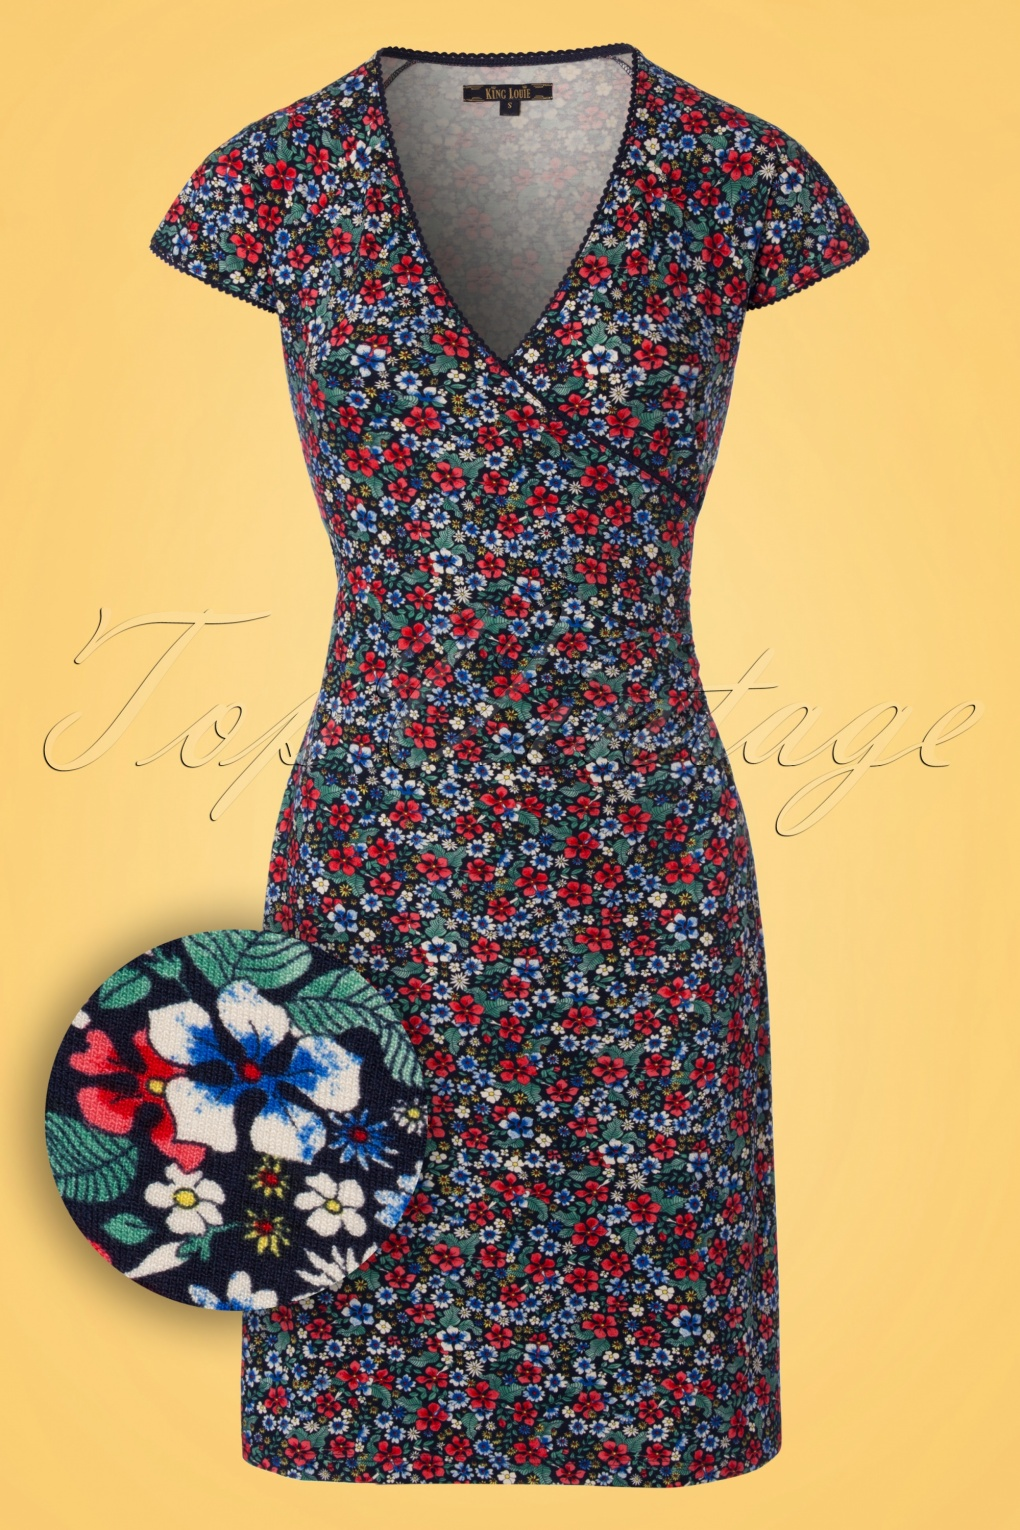 1960s Mad Men Dresses and Clothing Styles 60s Hula Floral Cross Dress in Blue £84.10 AT vintagedancer.com